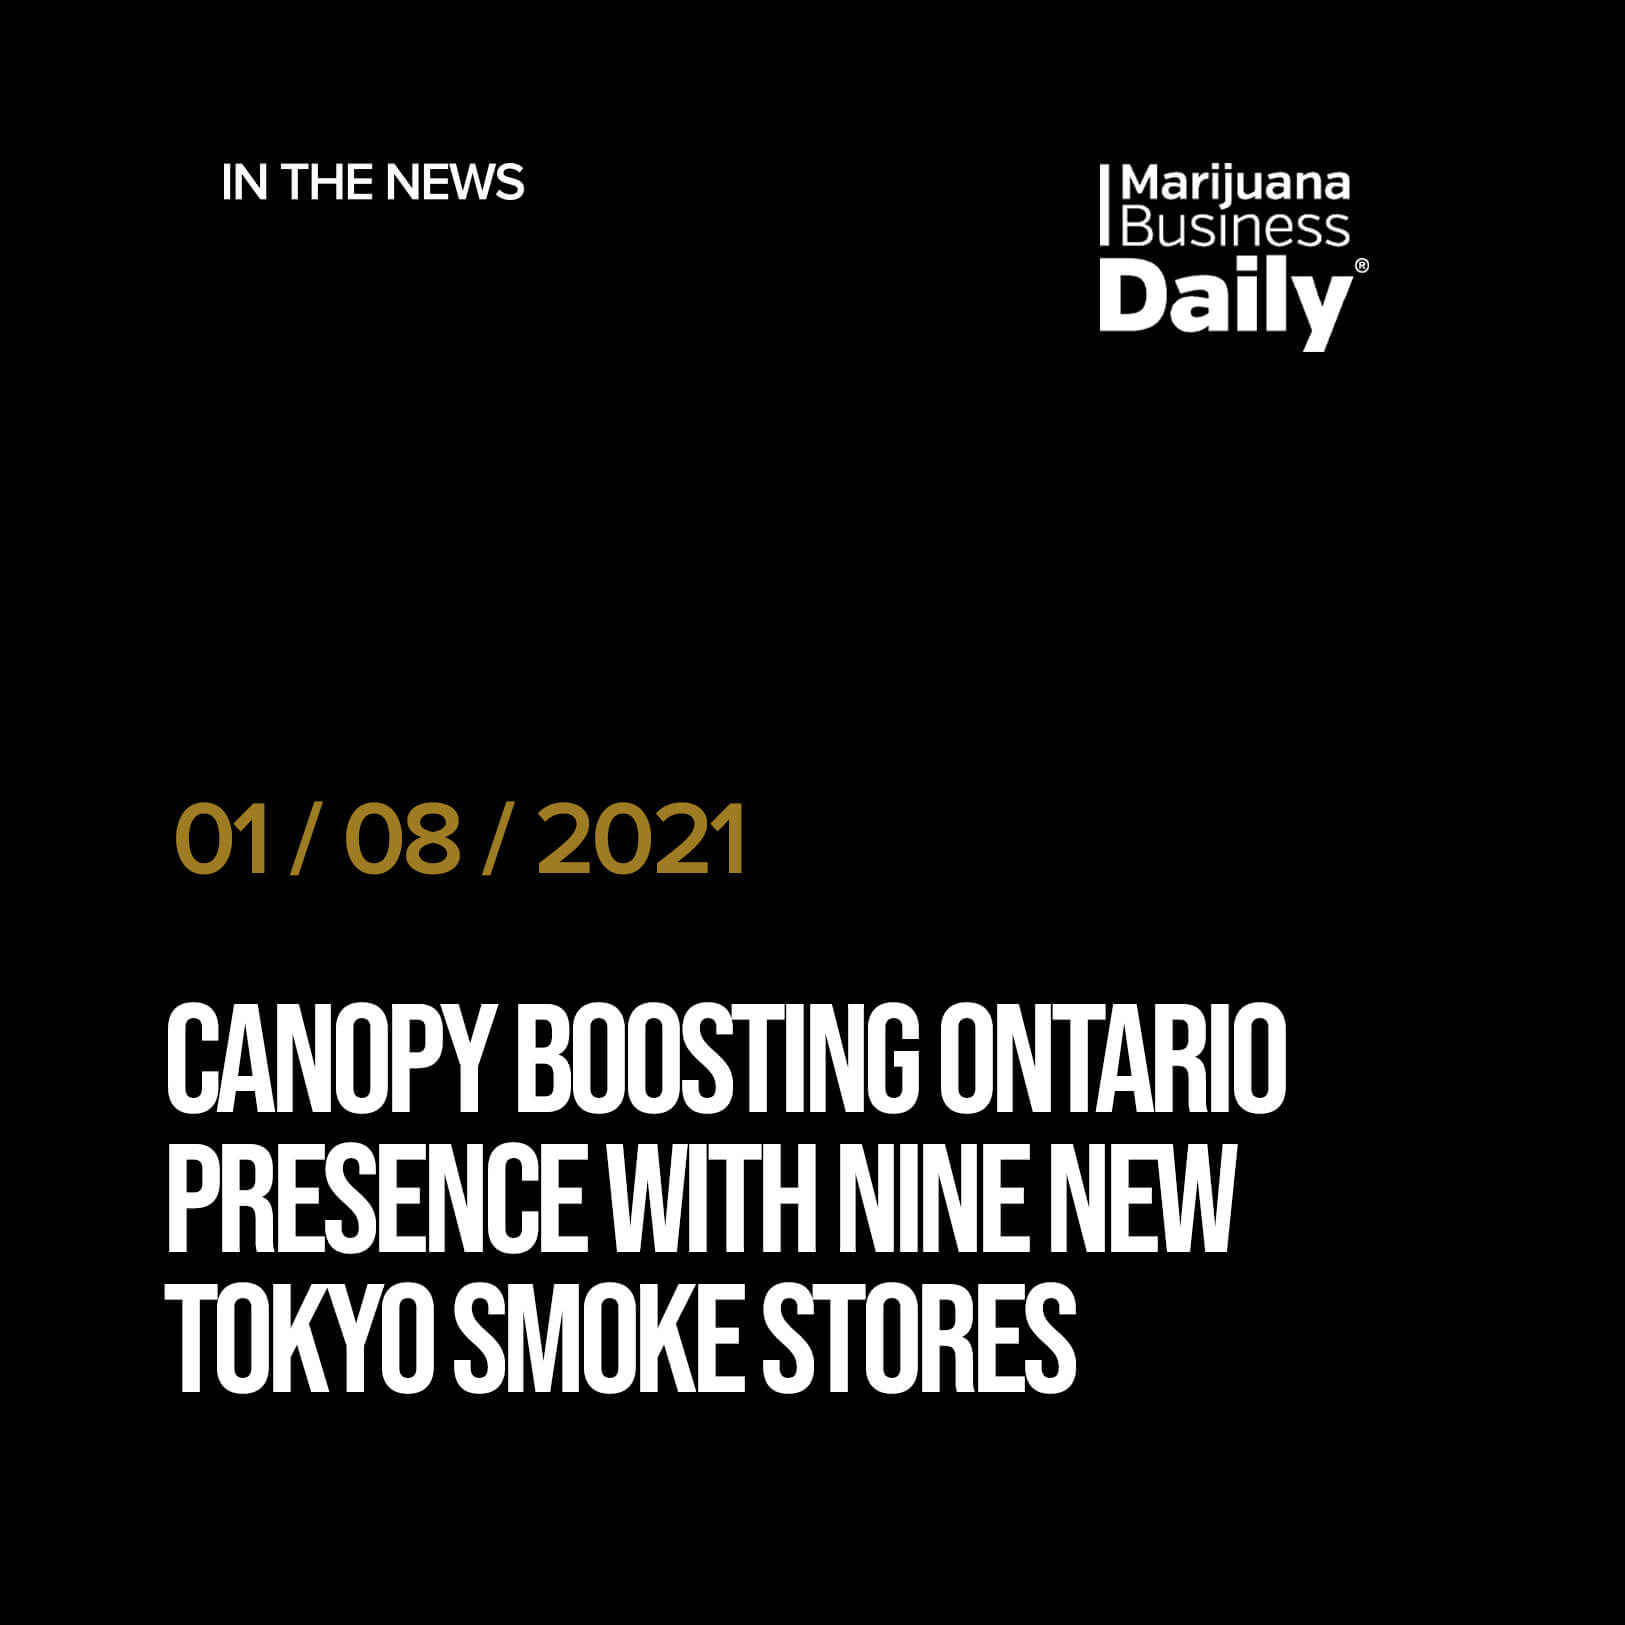 Canopy boosting Ontario presence with nine new Tokyo Smoke stores